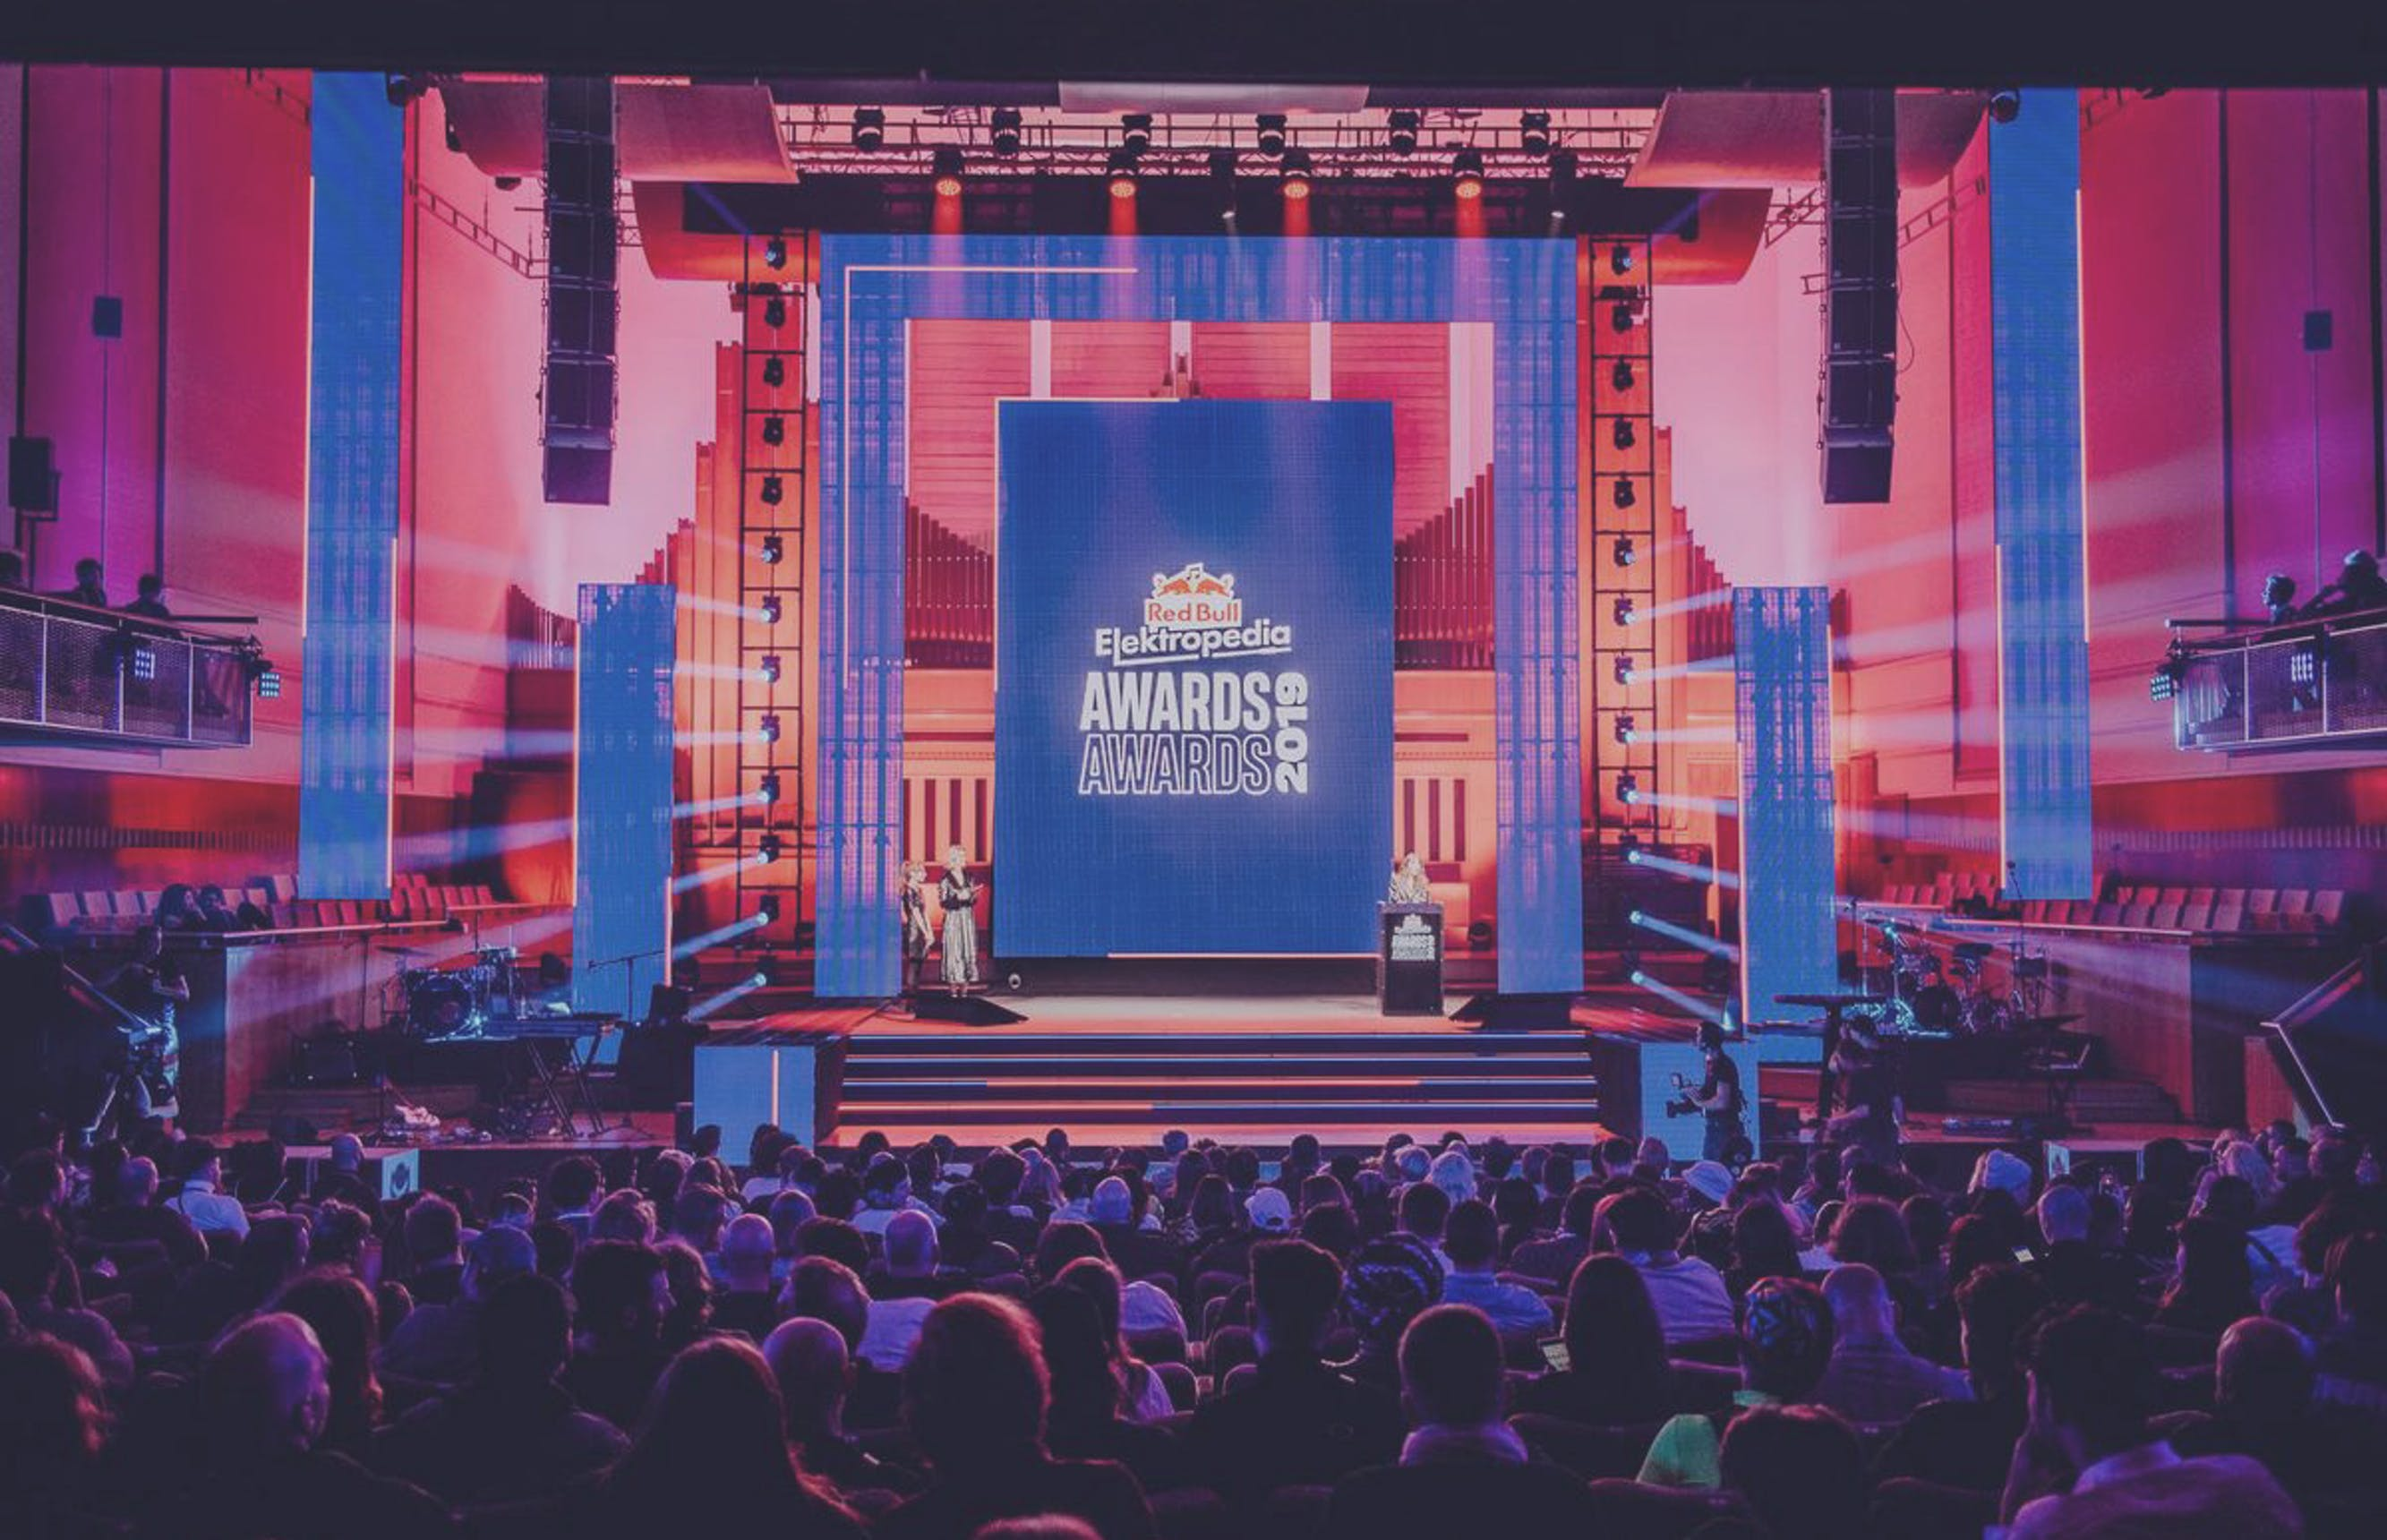 Digitale Red Bull Elektropedia Awards en een veiling voor LIVE2020